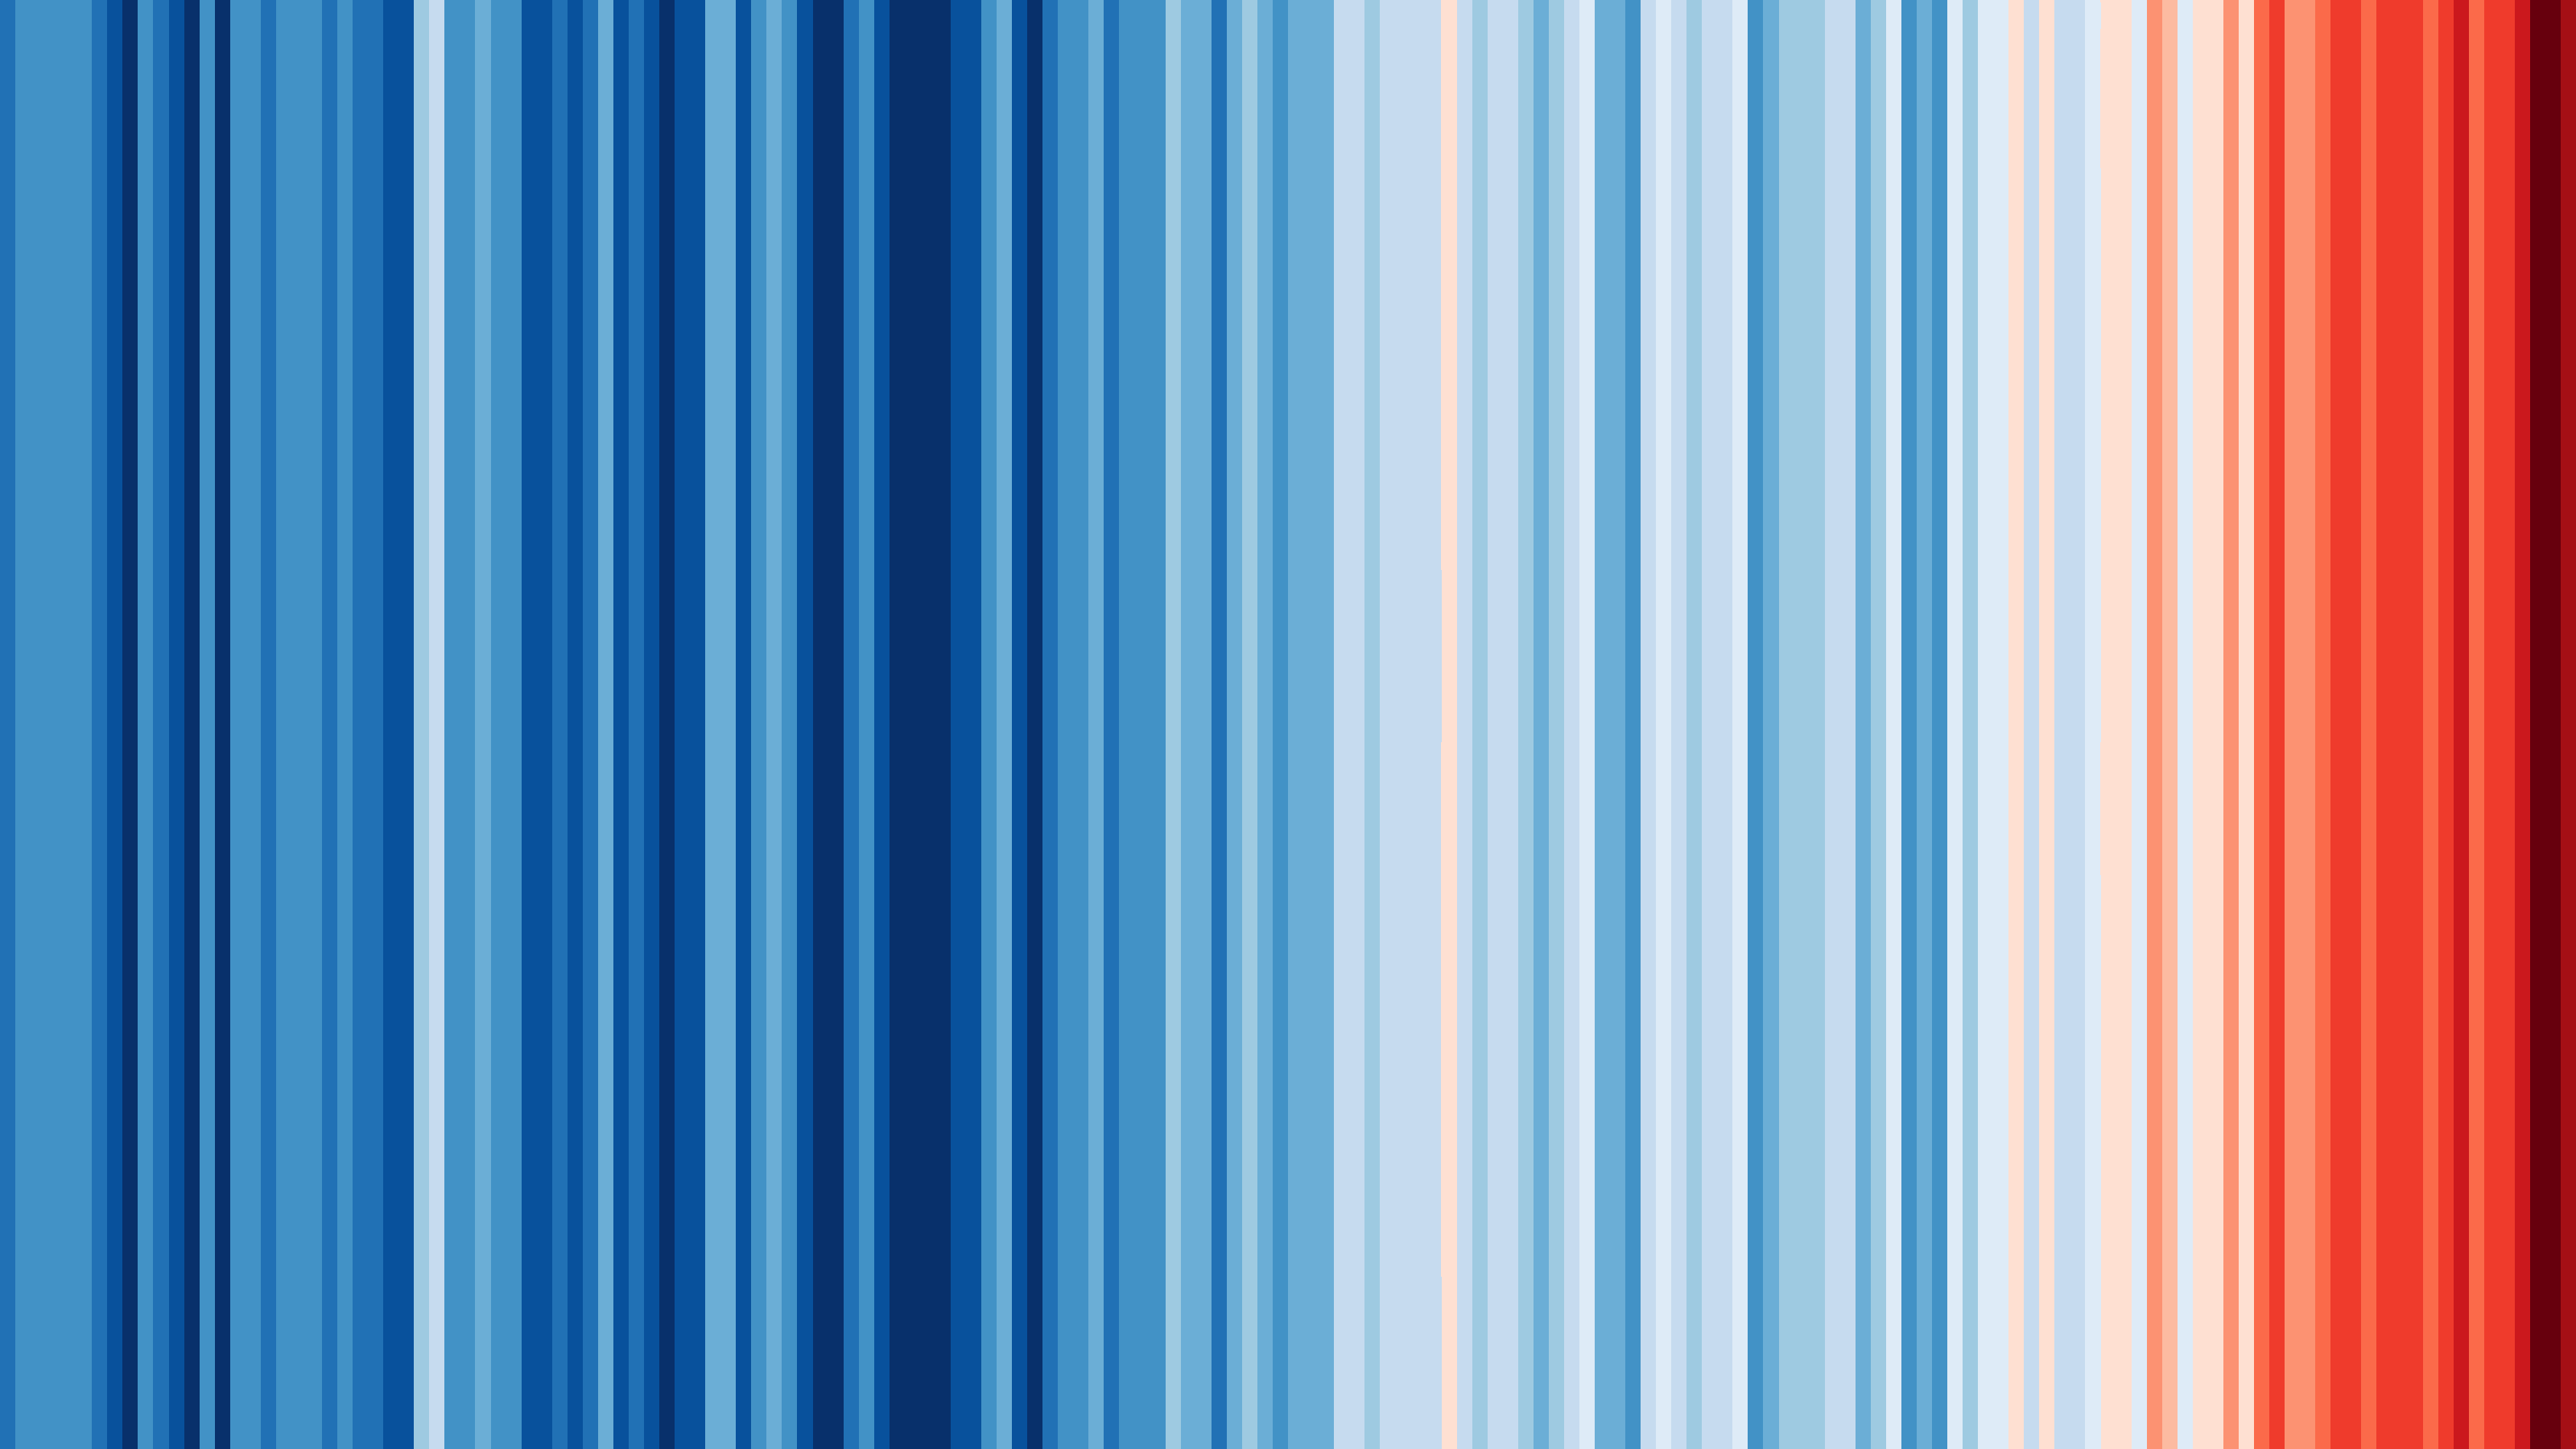 Warming stripes - Annual global temperatures from 1850-2017